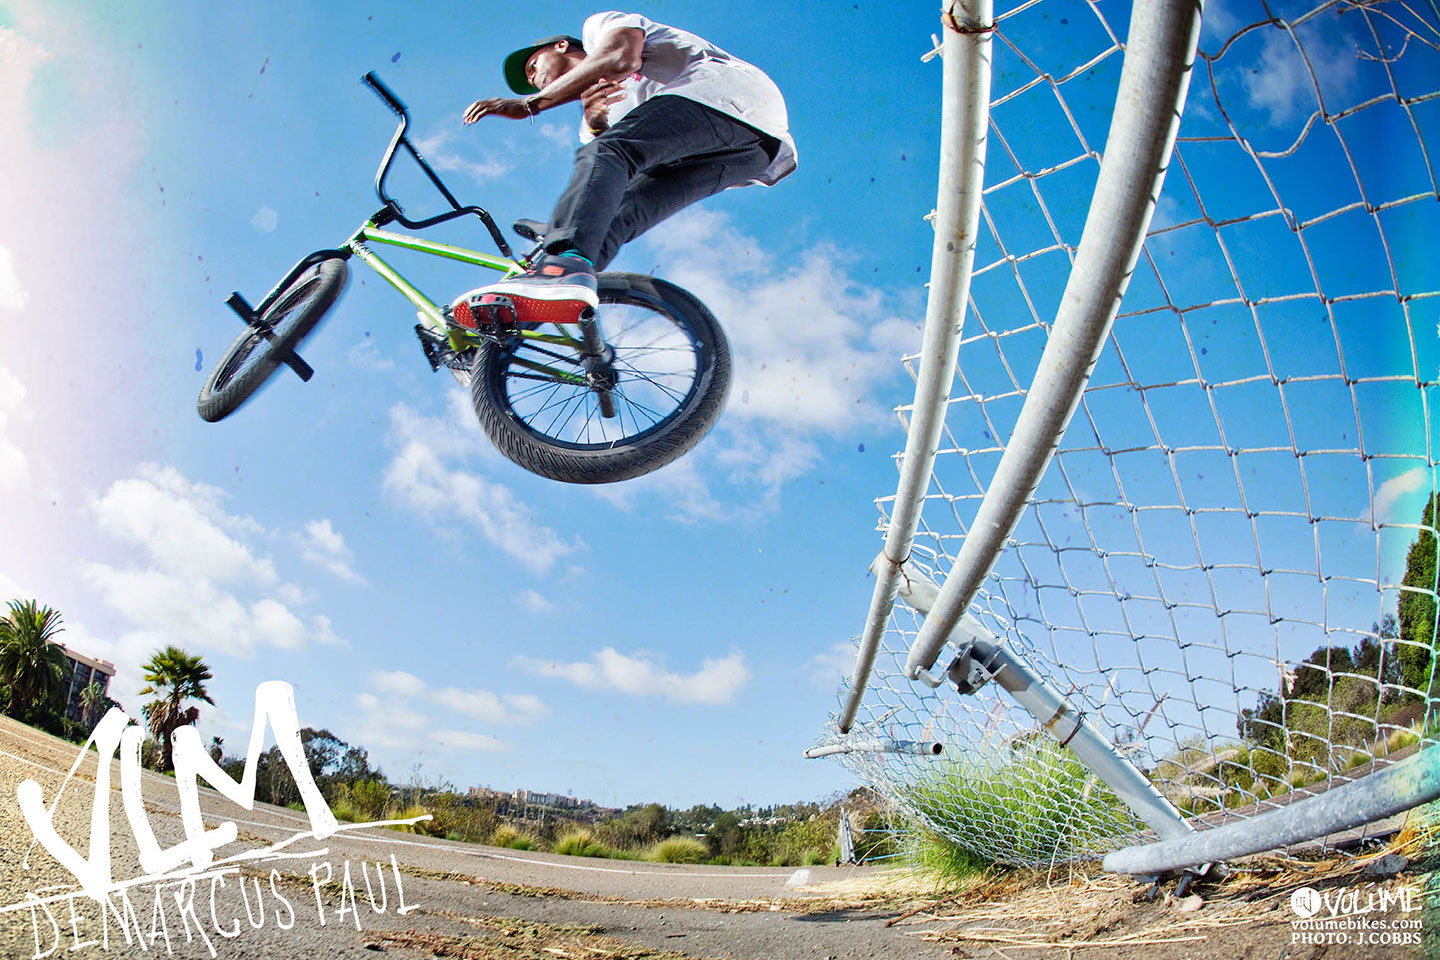 DeMarcus Fence Jam To Barspin